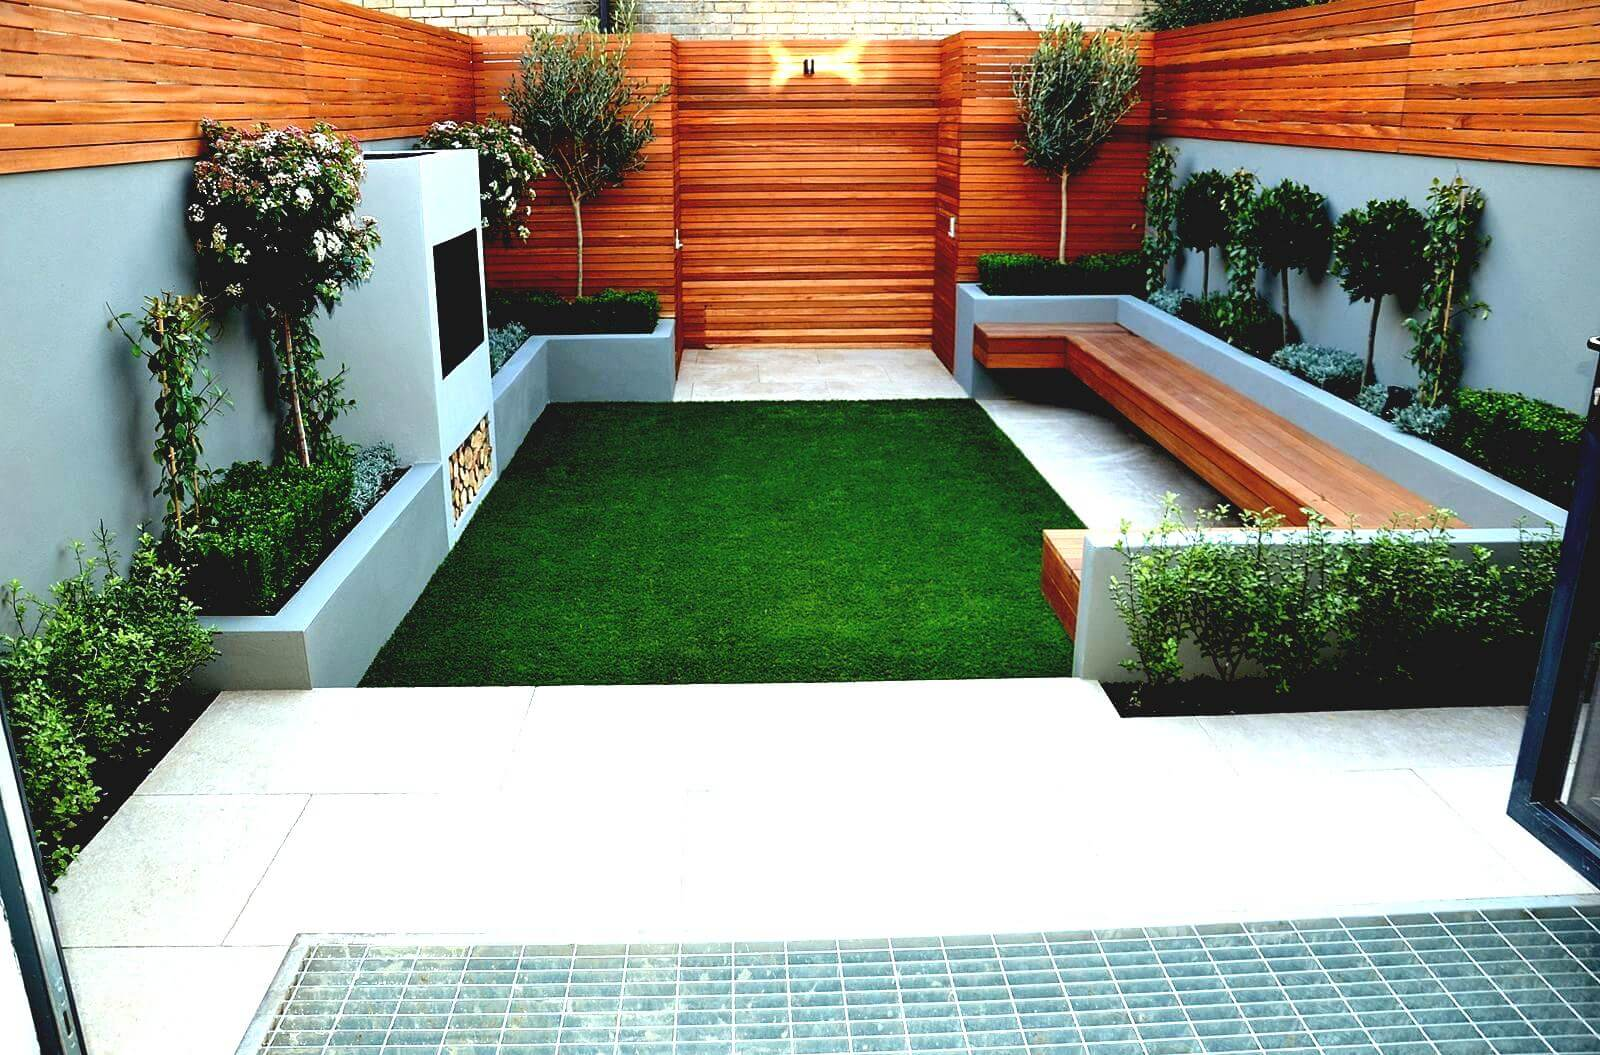 50 Best Front Garden Design Ideas in UK - Home Decor Ideas UK on Outdoor Patio Design Ideas id=17119